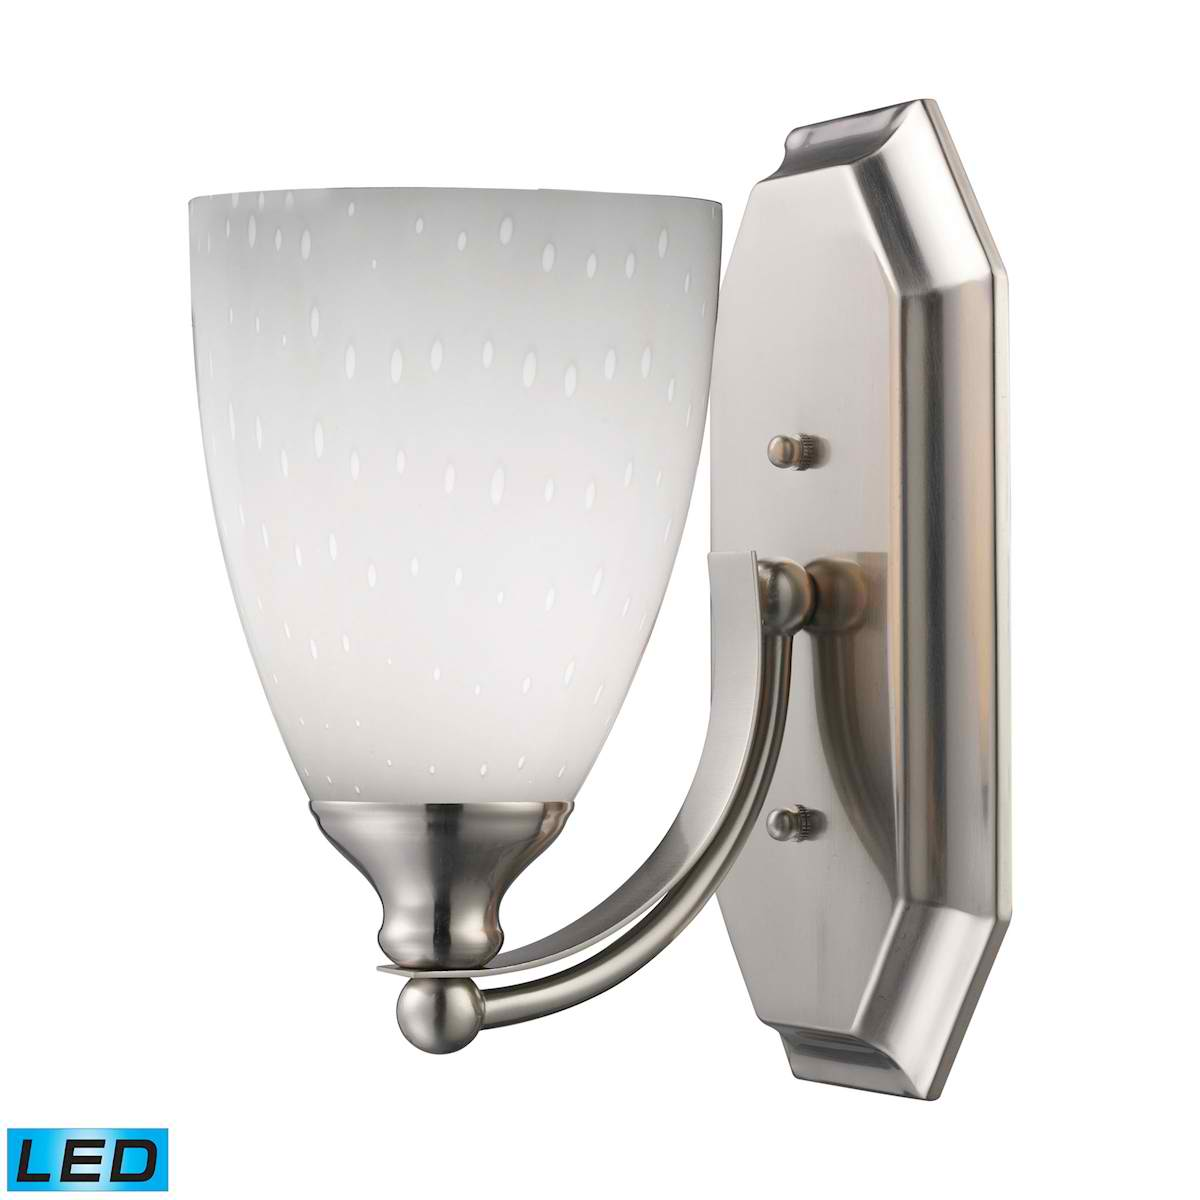 1 Light Vanity in Satin Nickel and Simply White Glass - LED Offering Up To 800 Lumens (60 Watt Equivalent)